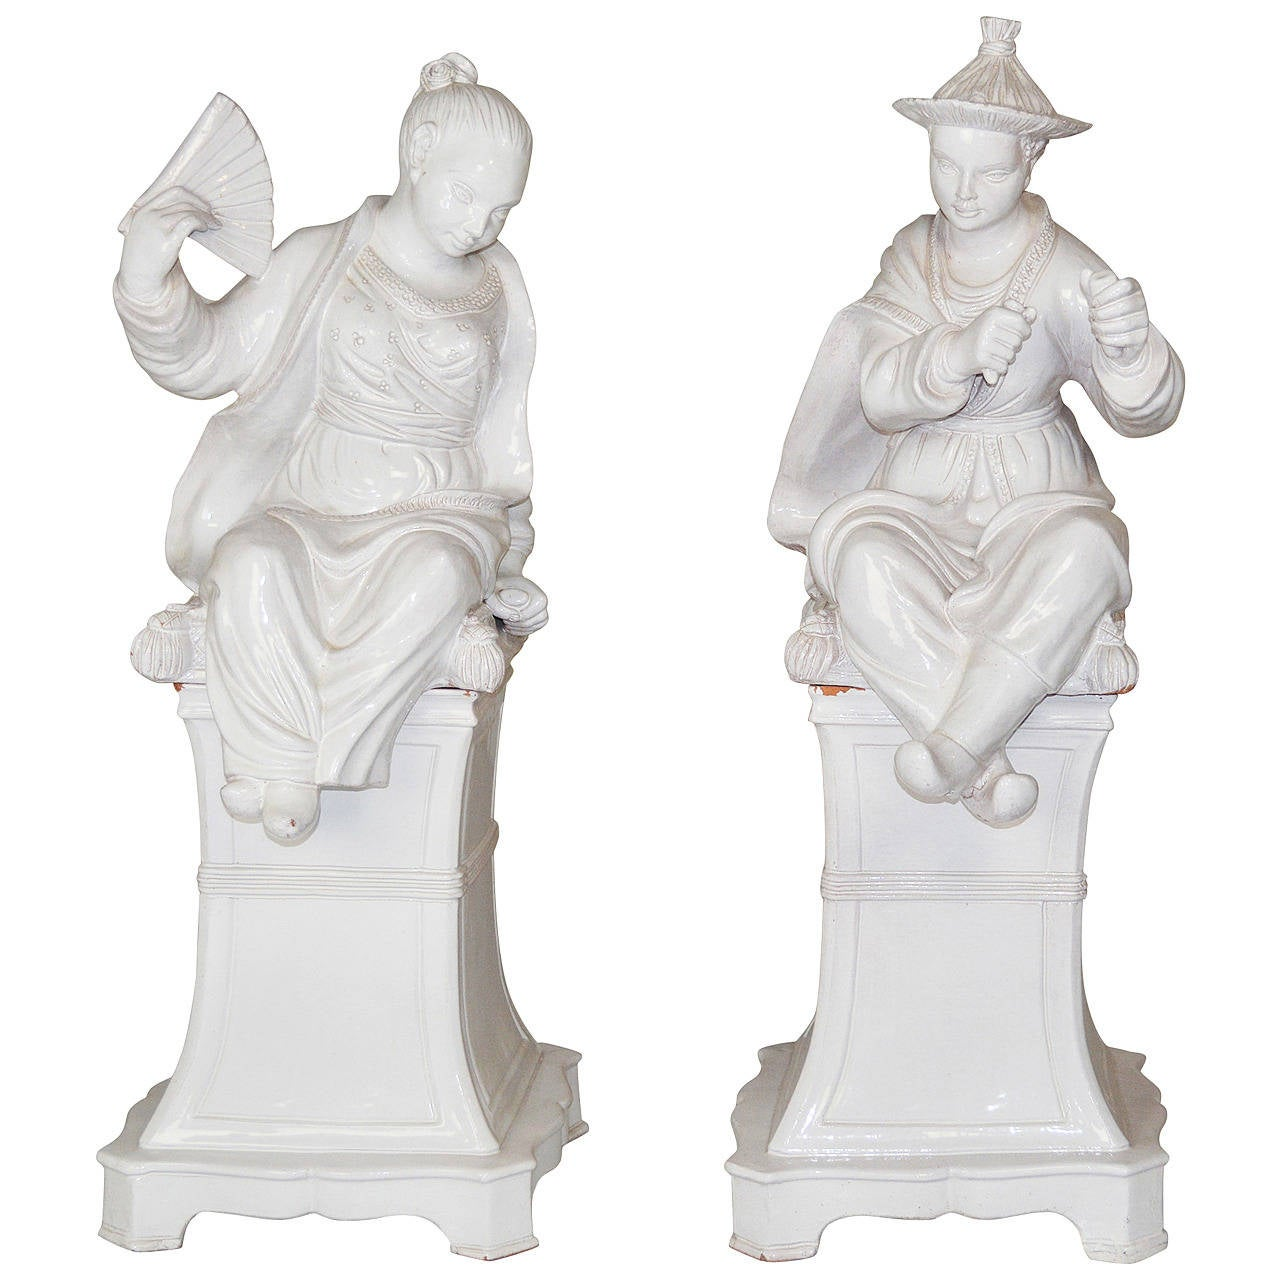 Pair of Large Italian Faience Glazed Chinese Figures on Pedestals